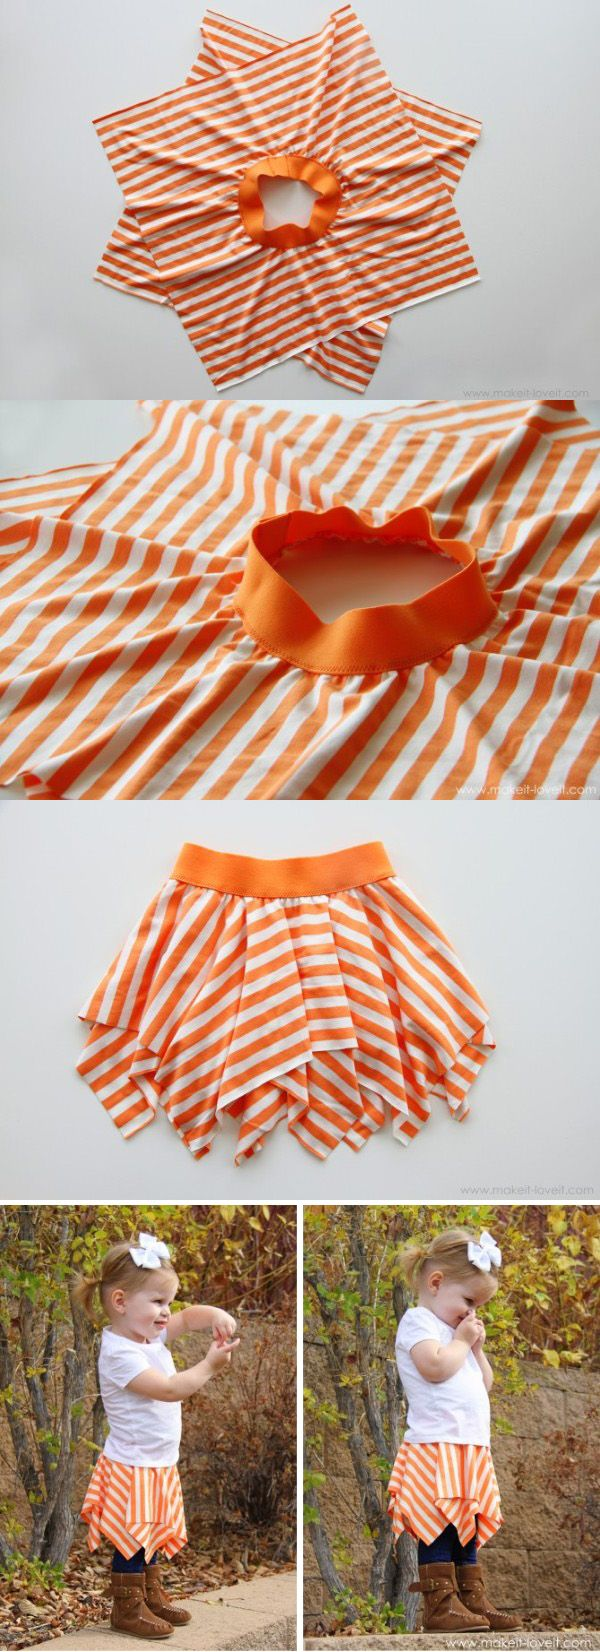 DIY – Square circle skirt. A very cute idea for a little